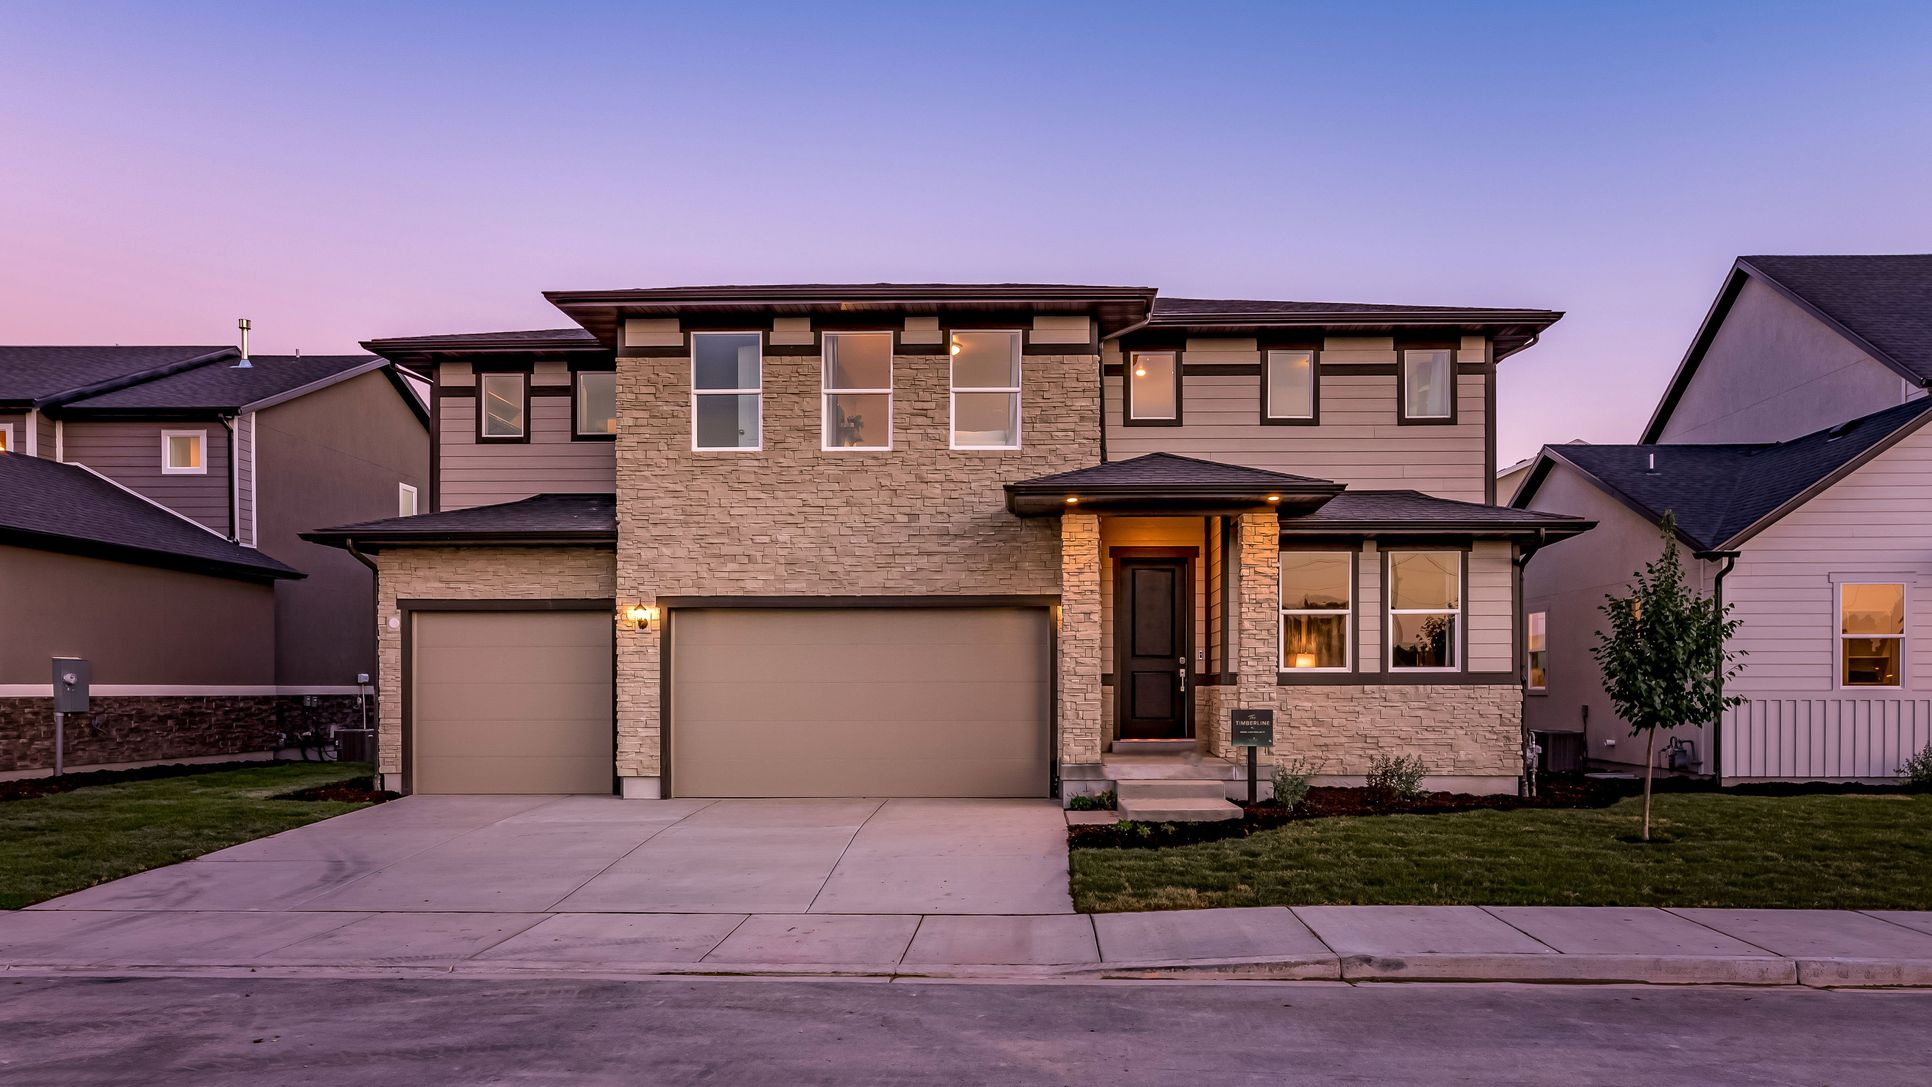 New homes for sale in South Jordan, UT by Lennar!